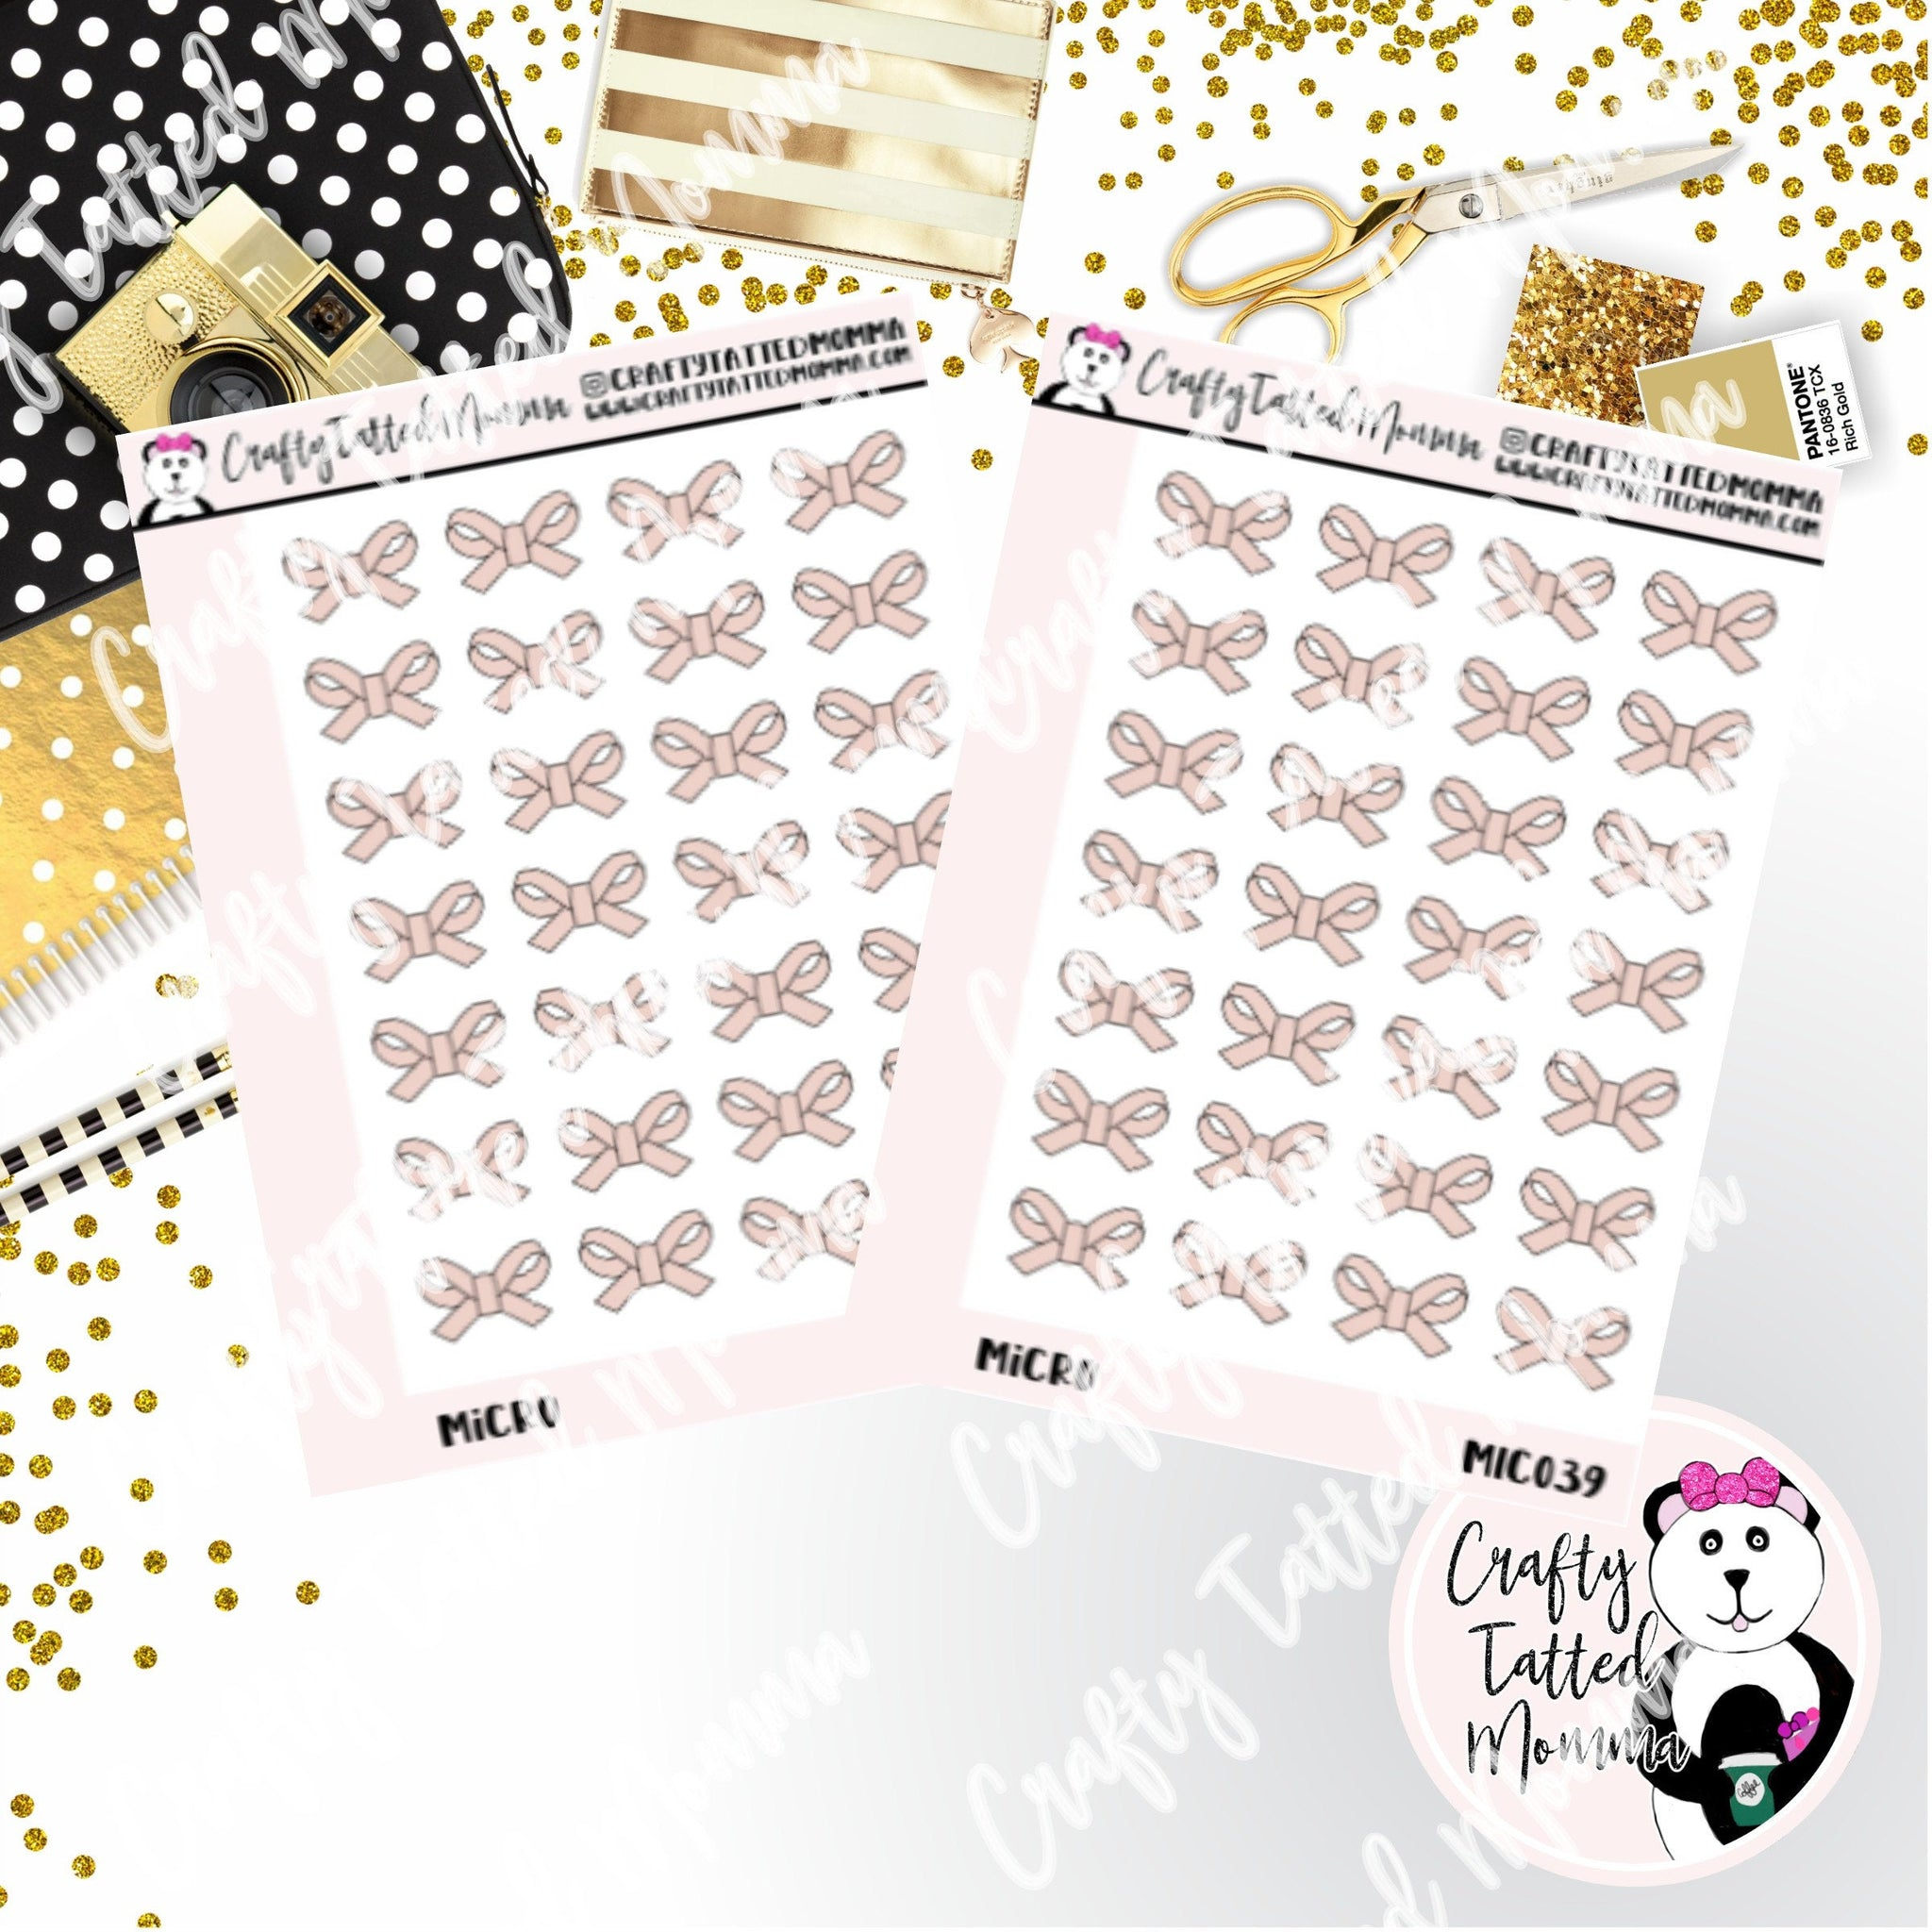 Neutral Bow   Micro Sticker Sheet   Mini Stickers   Planner Stickers   TN Stickers   Hobonichi Stickers   Functional Stickers   Micro Plan